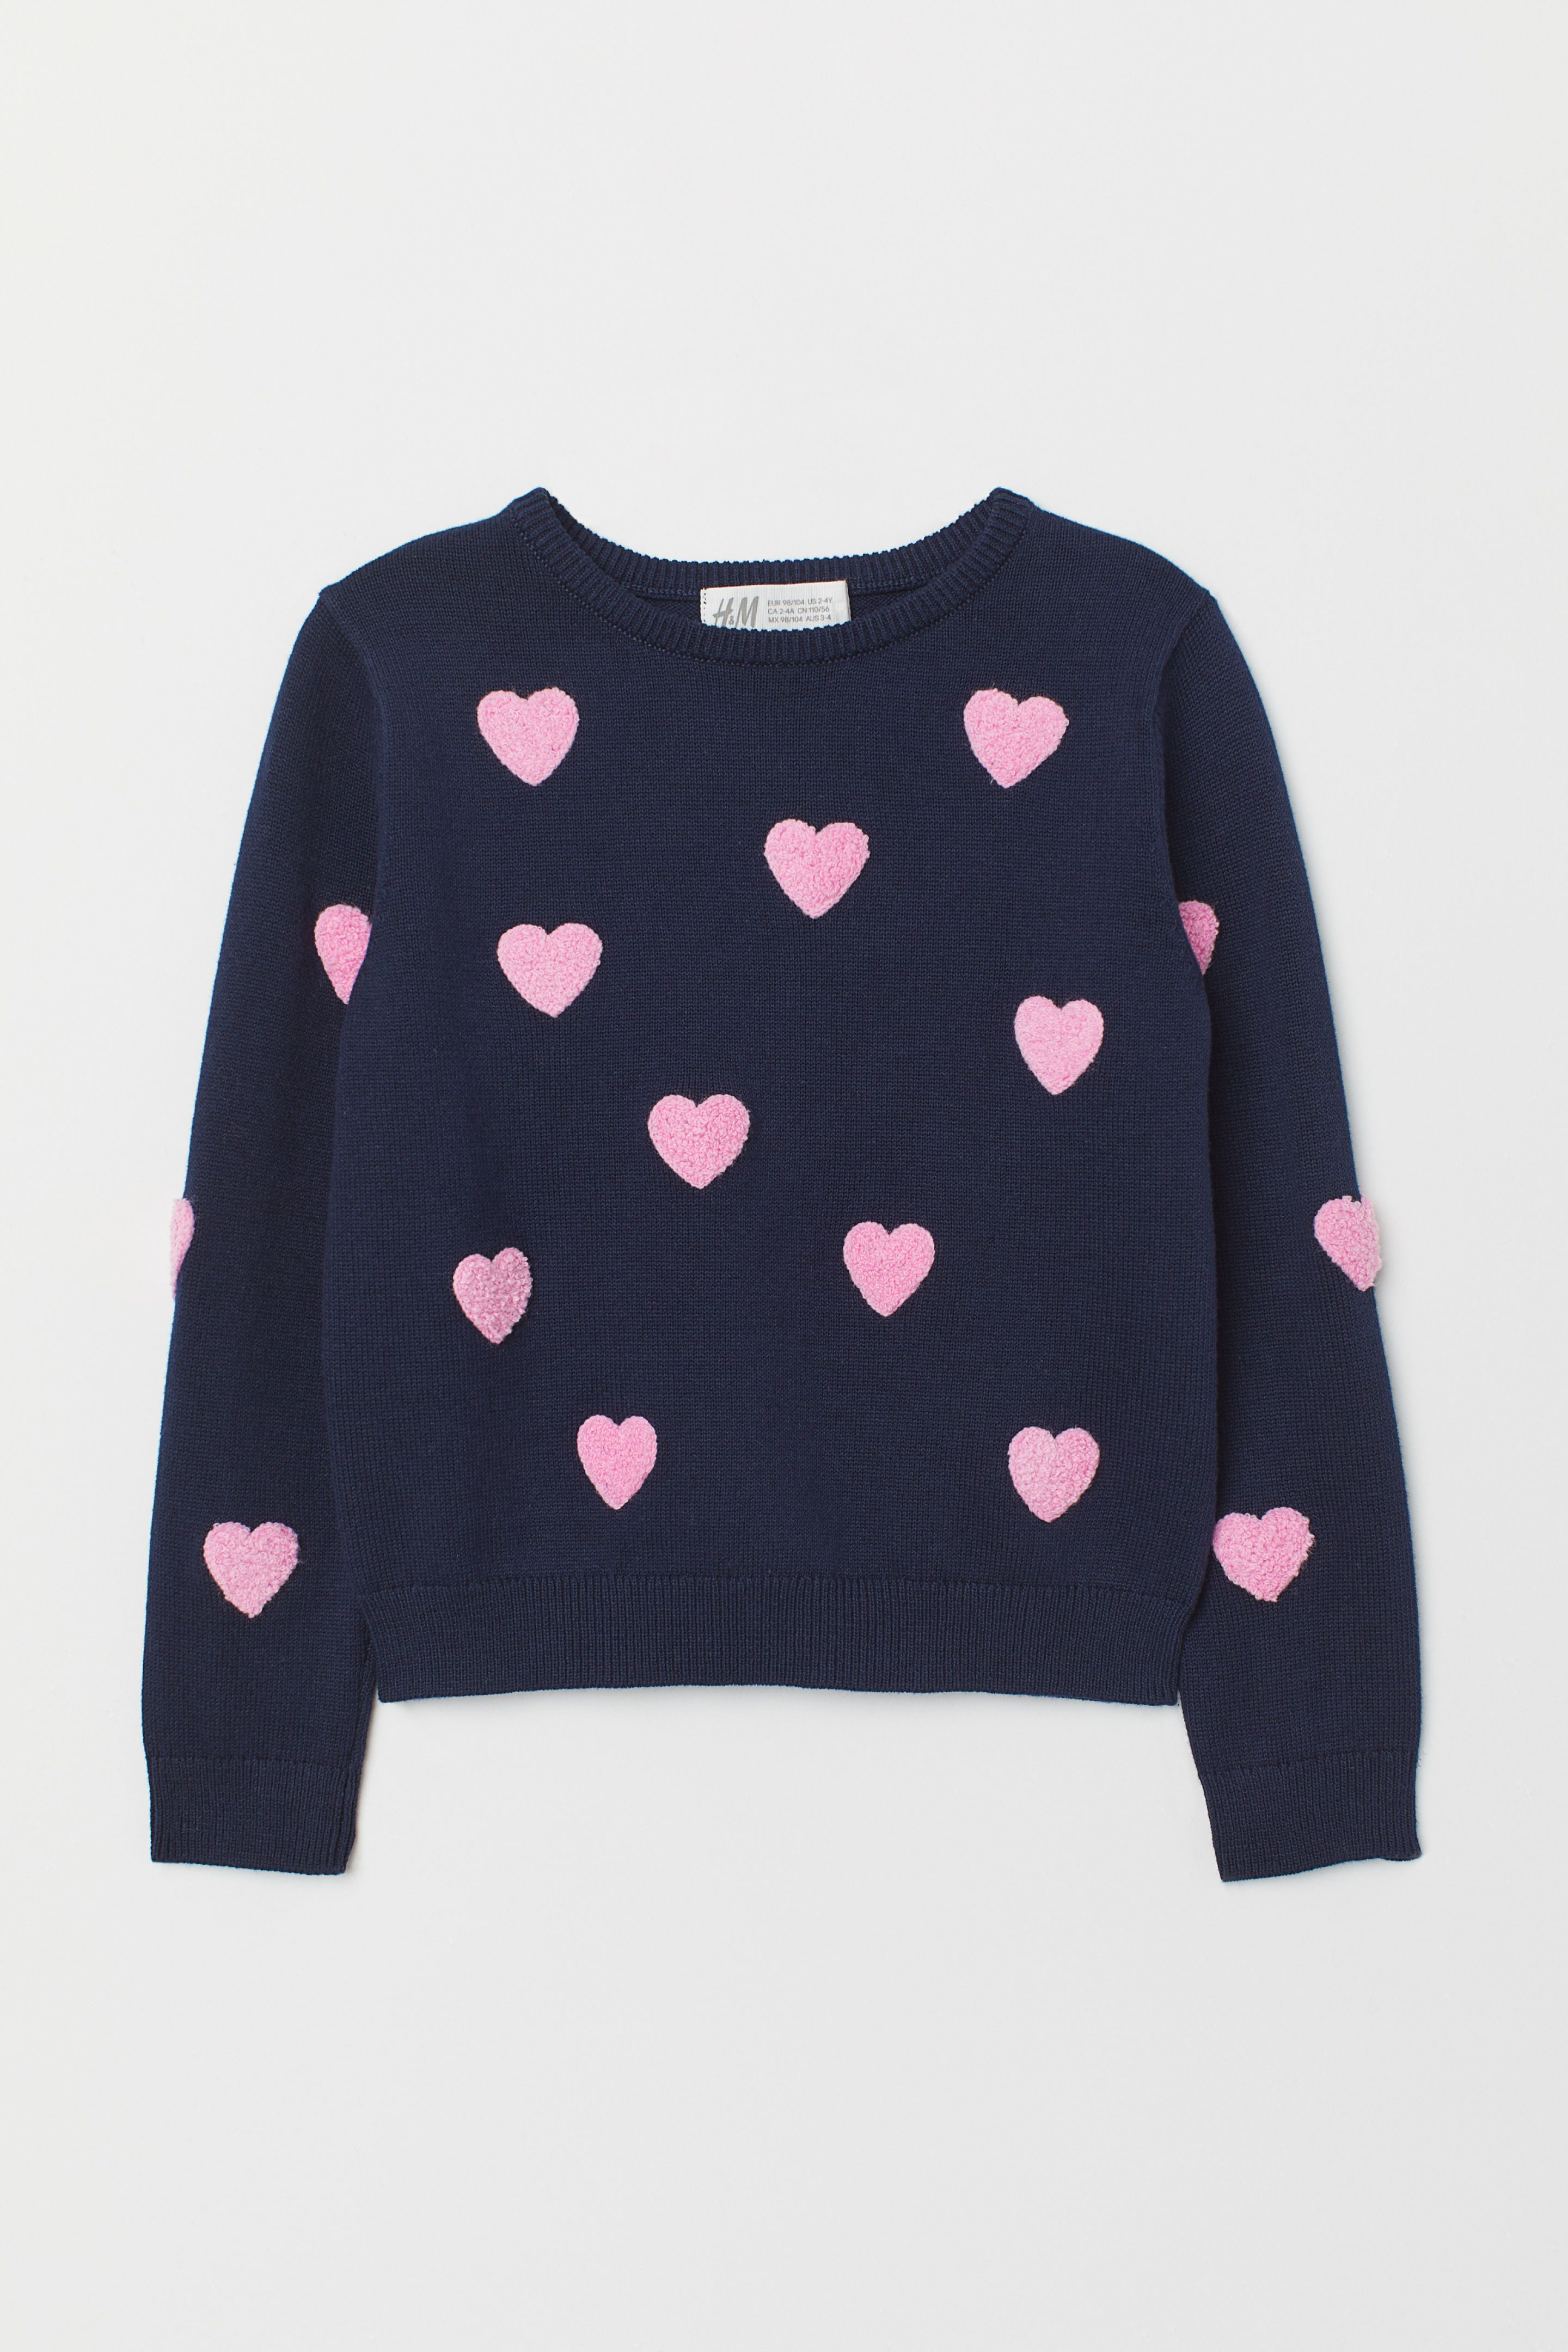 Internet Kid Girls Love Heart Long Sleeve Shirt Sweater+Pants Skirt Suit 5 Y, Pink for 3-7 Years Old